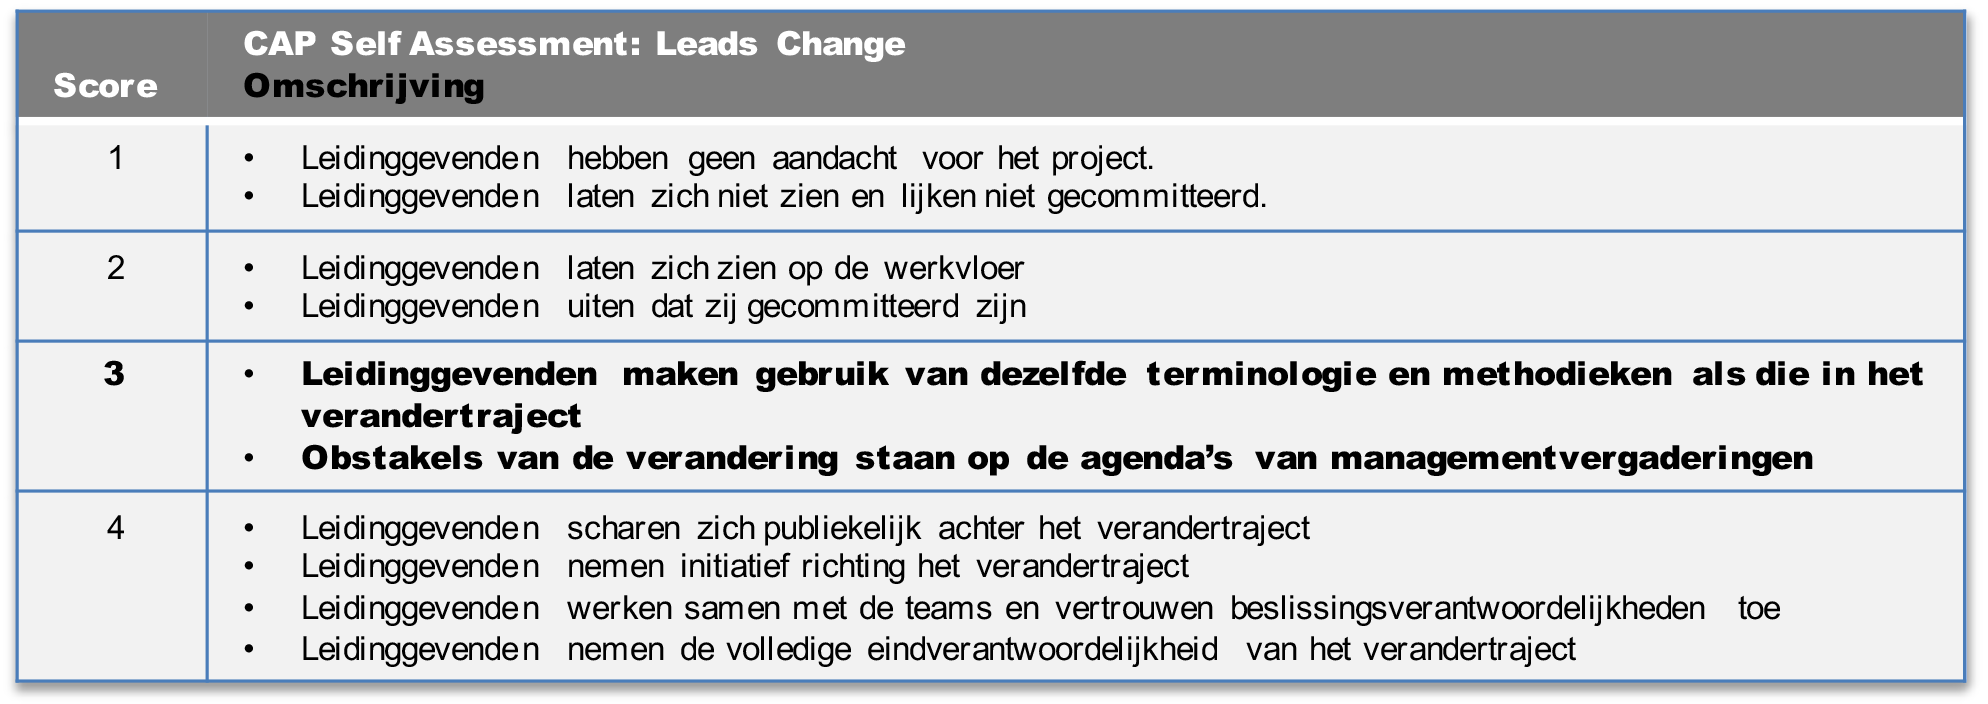 cap model leading change voorbeeld 2.png